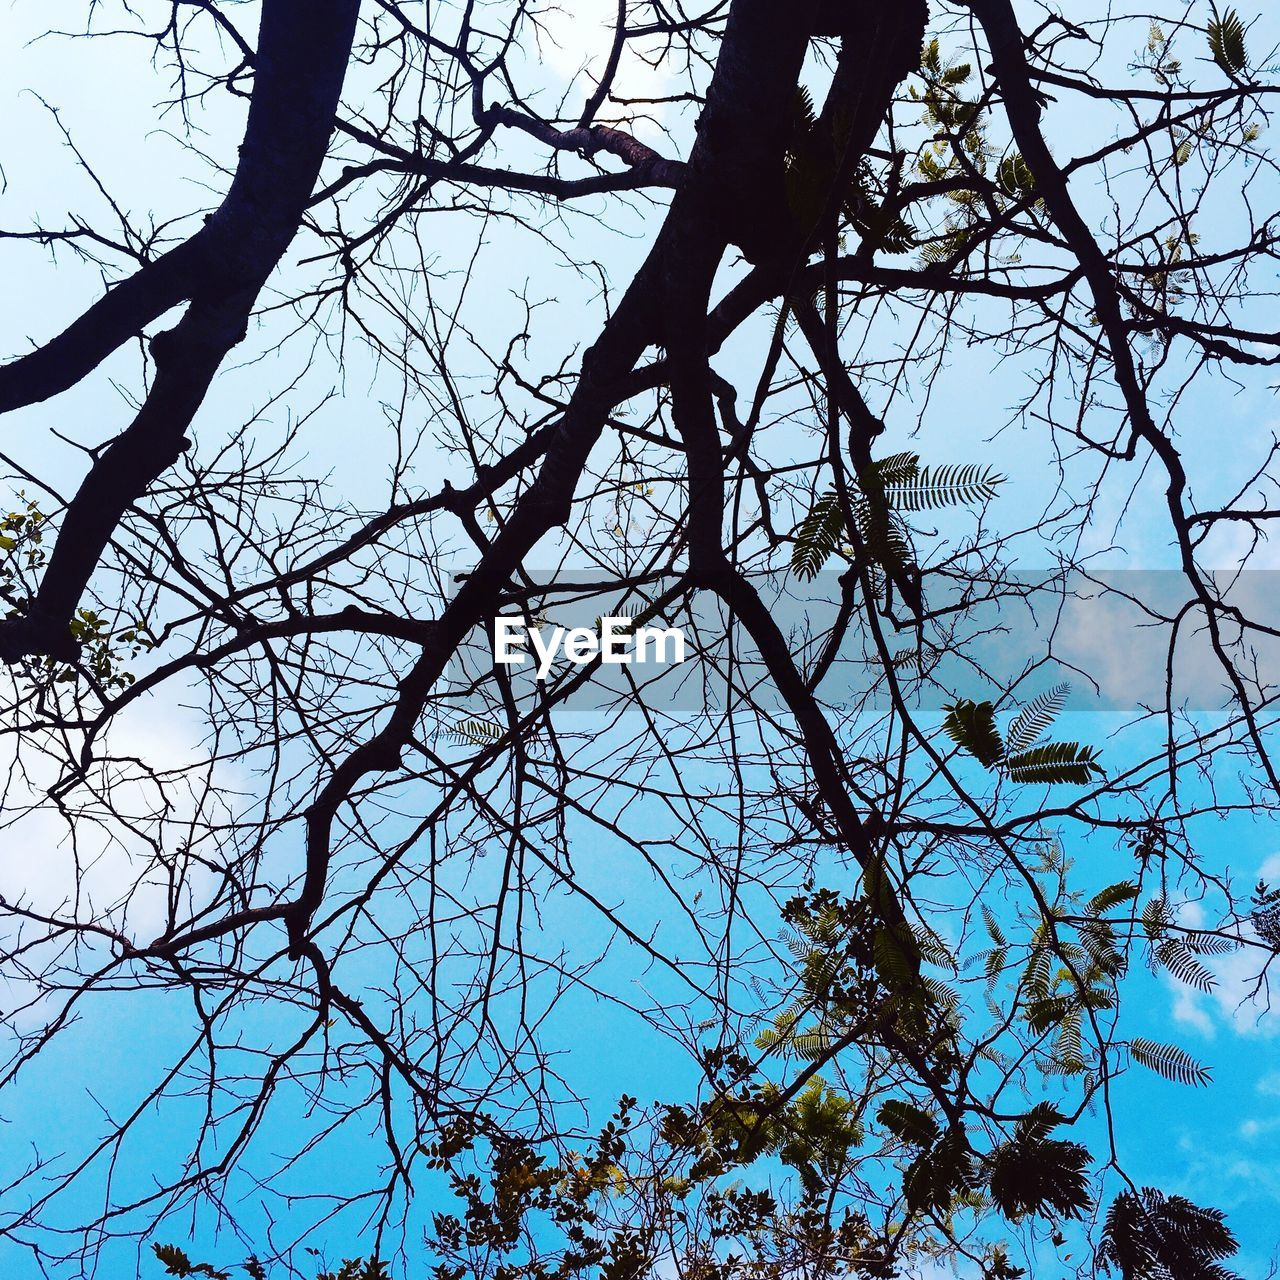 tree, low angle view, branch, plant, sky, no people, beauty in nature, tranquility, nature, growth, day, bare tree, outdoors, clear sky, silhouette, blue, scenics - nature, sunlight, tranquil scene, twig, tree canopy